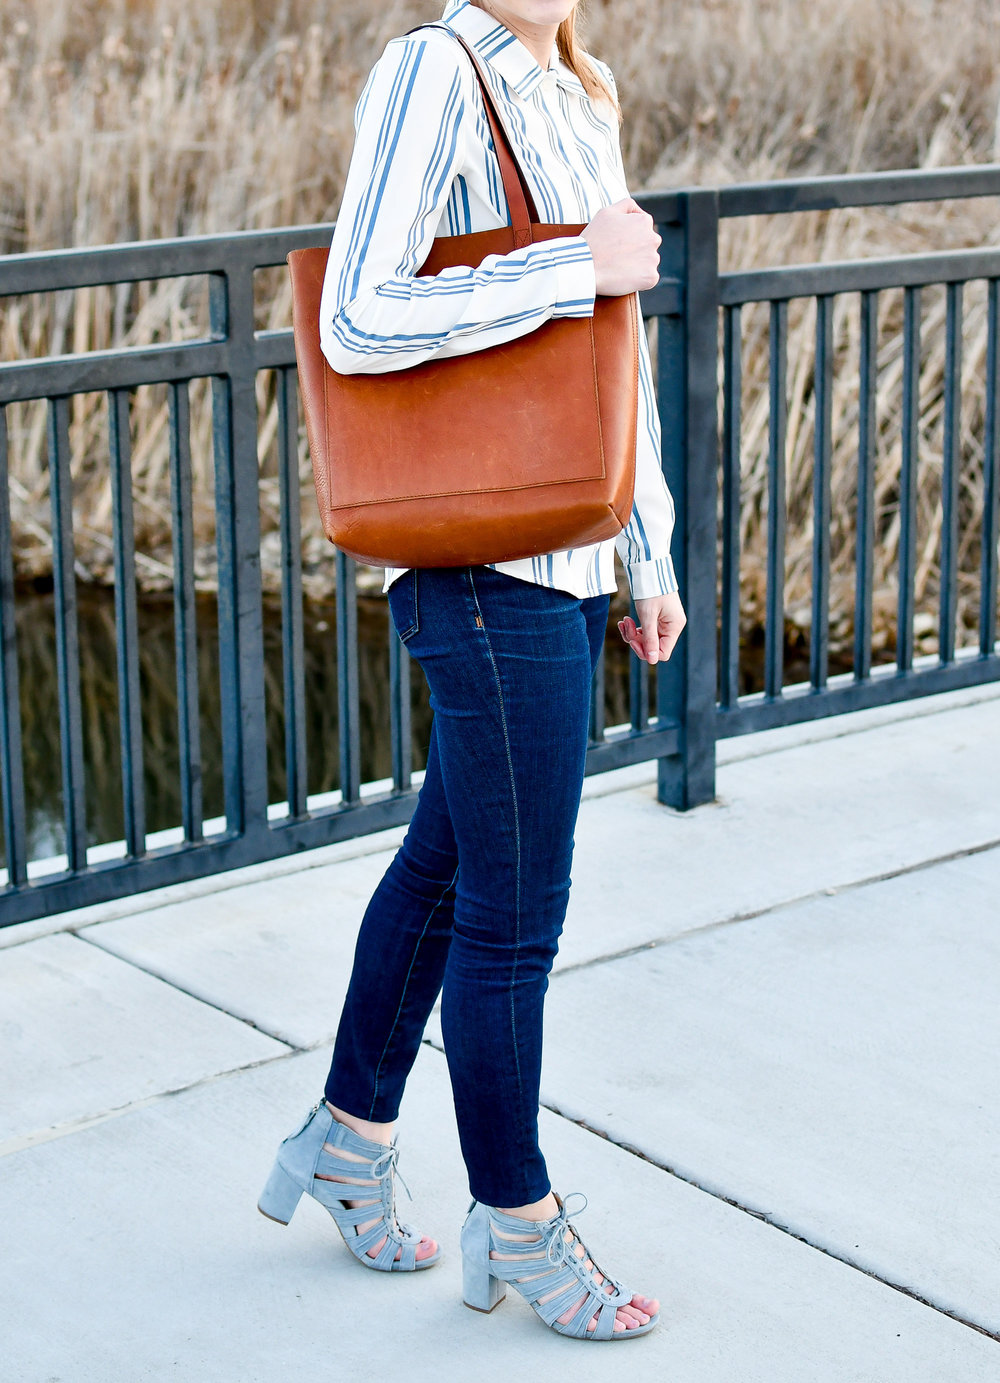 Earthies Saletto caged sandals and Madewell medium Transport tote — Cotton Cashmere Cat Hair